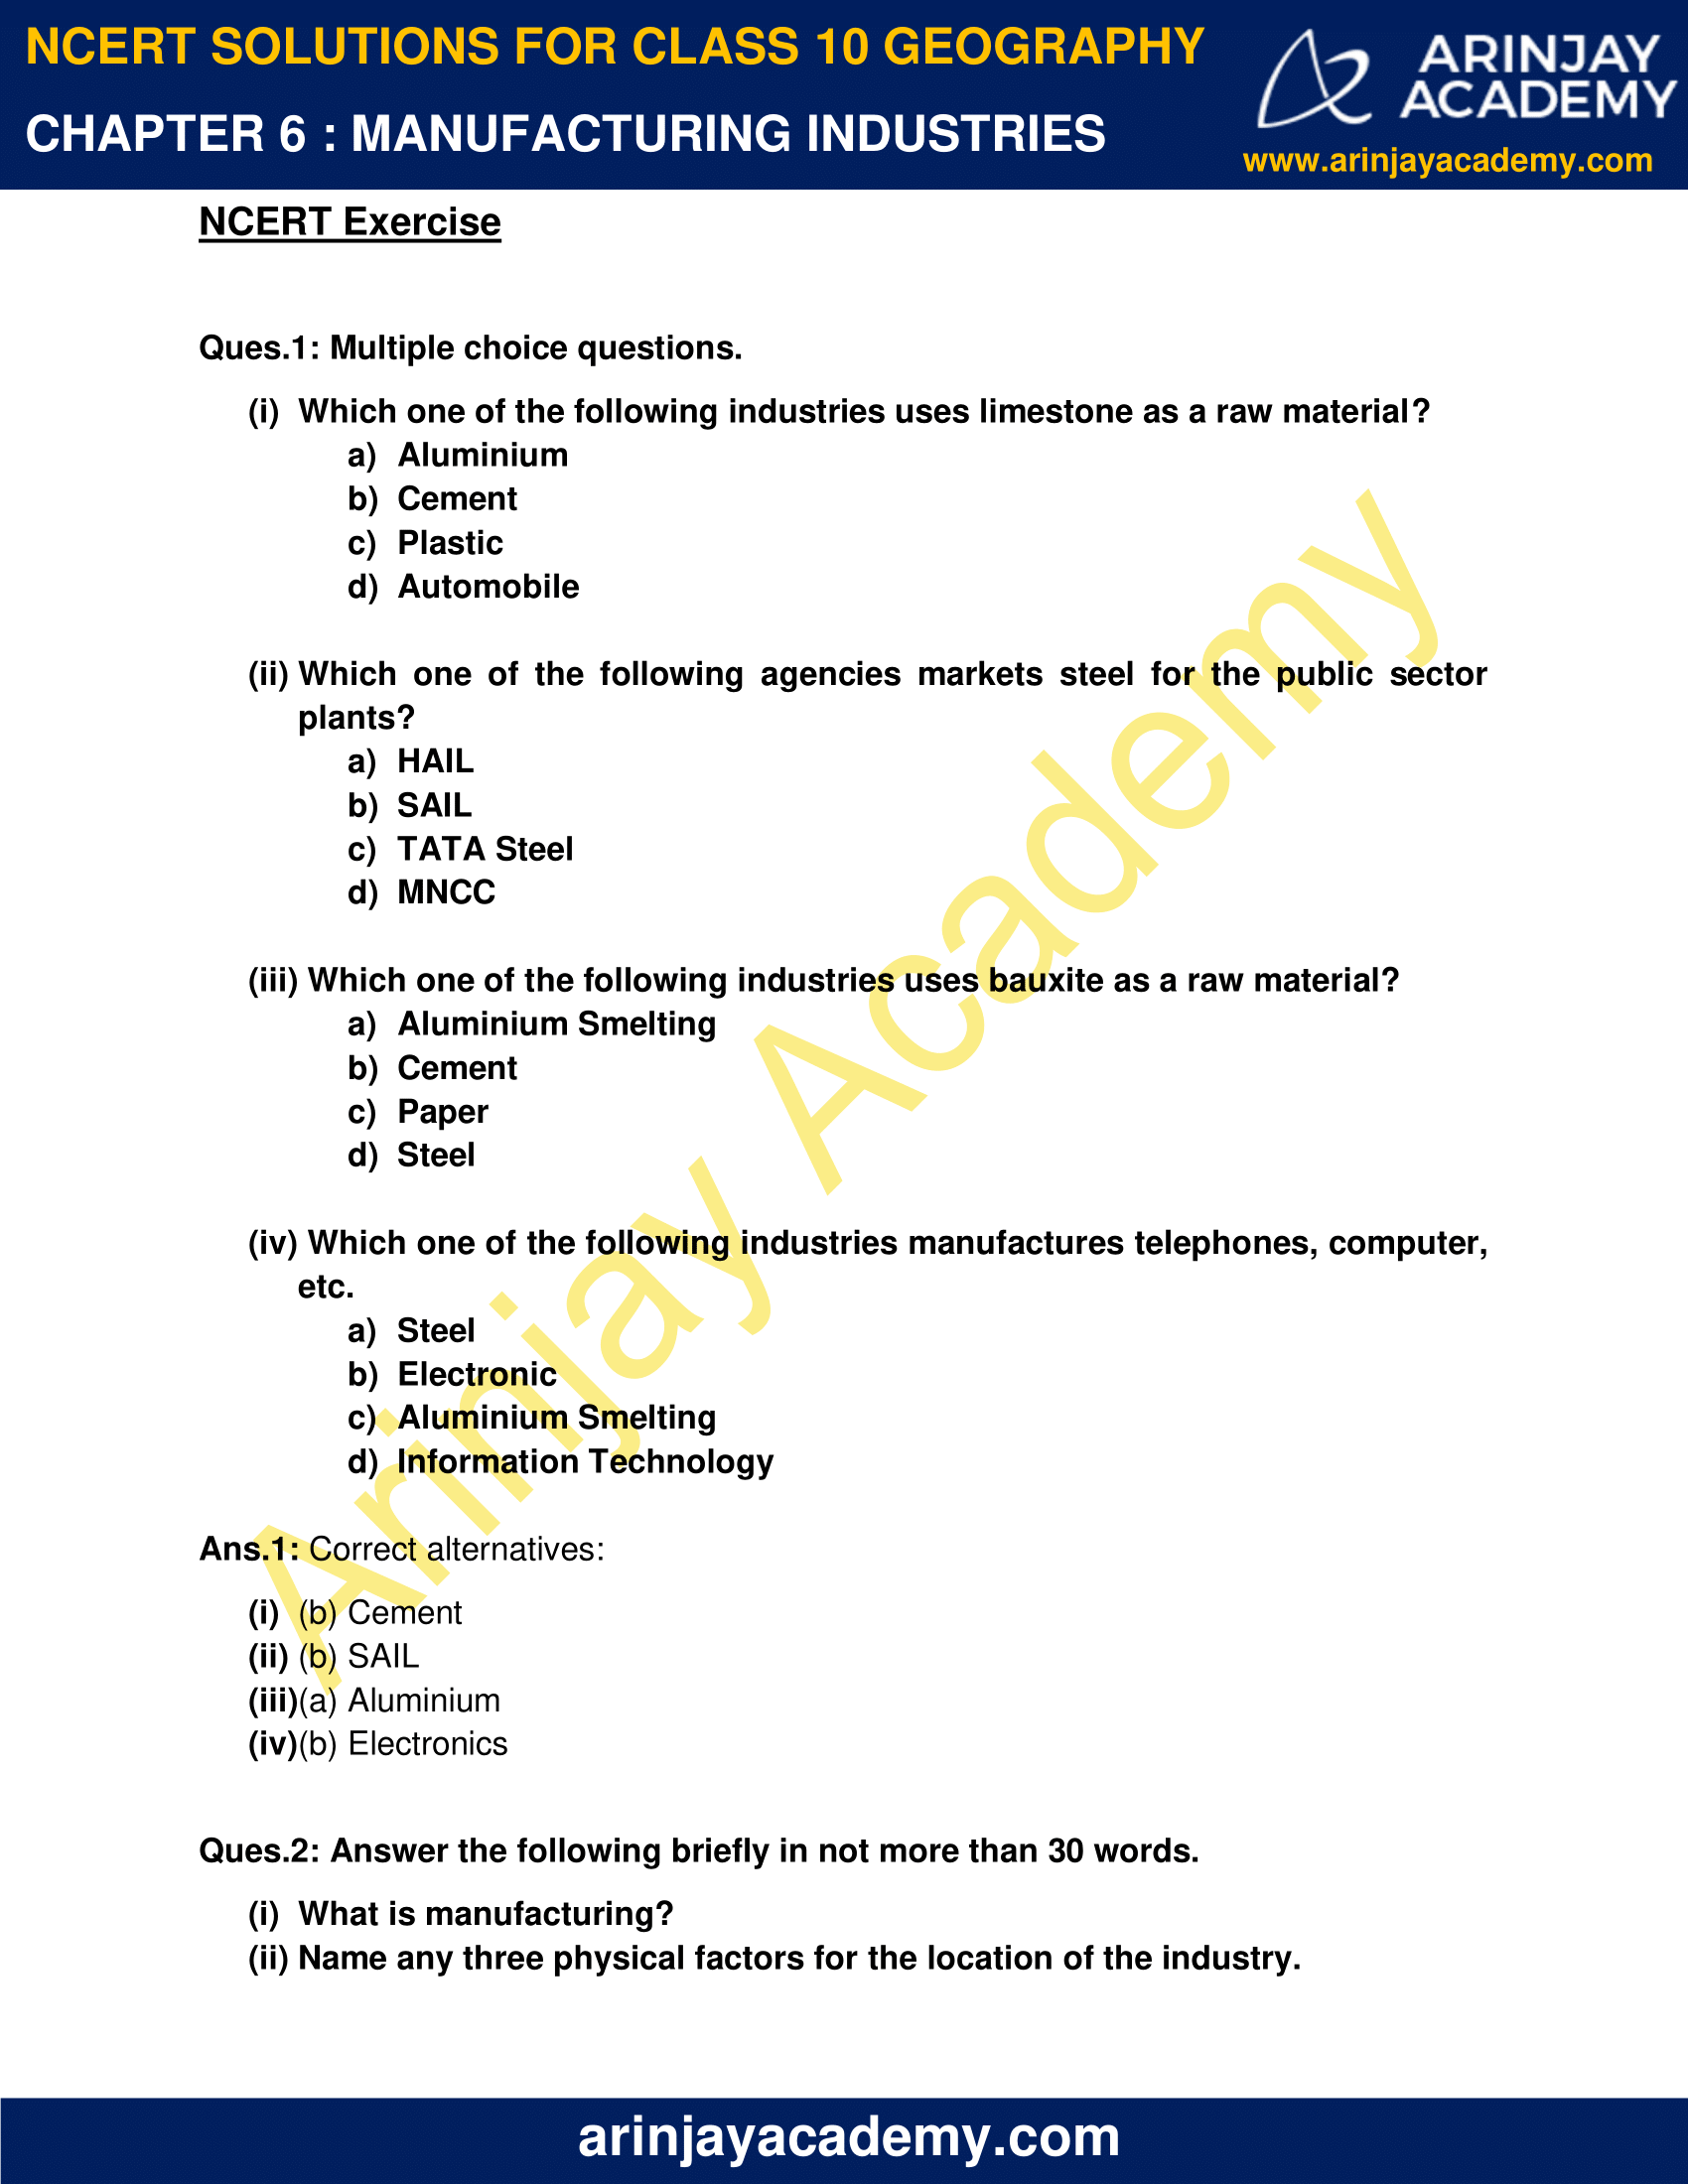 NCERT Solutions for Class 10 Geography Chapter 6 image 1